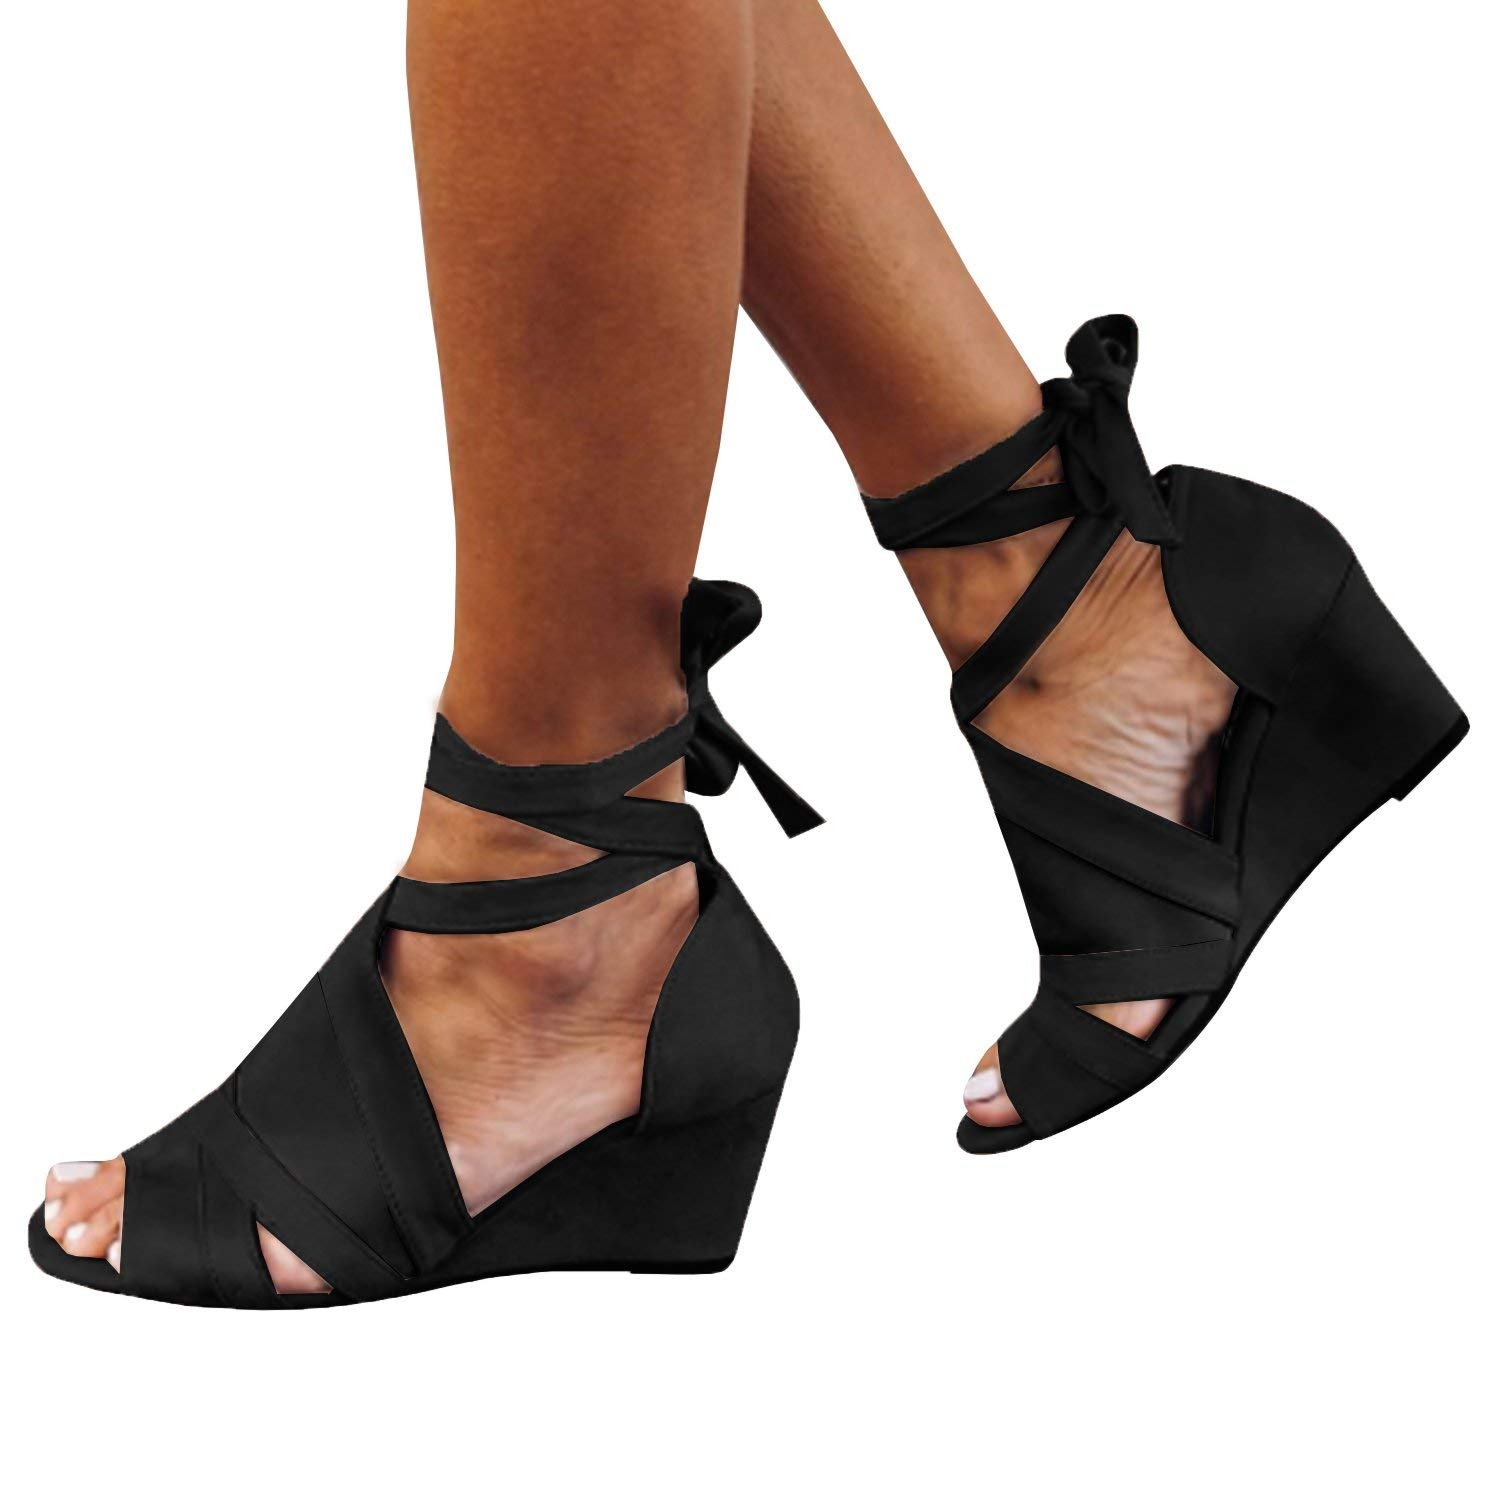 0c394d9b769 Get Quotations · Syktkmx Womens Strappy Lace up Pumps Peep Toe Ankle Wrap  High Chunky Block Heel Sandals